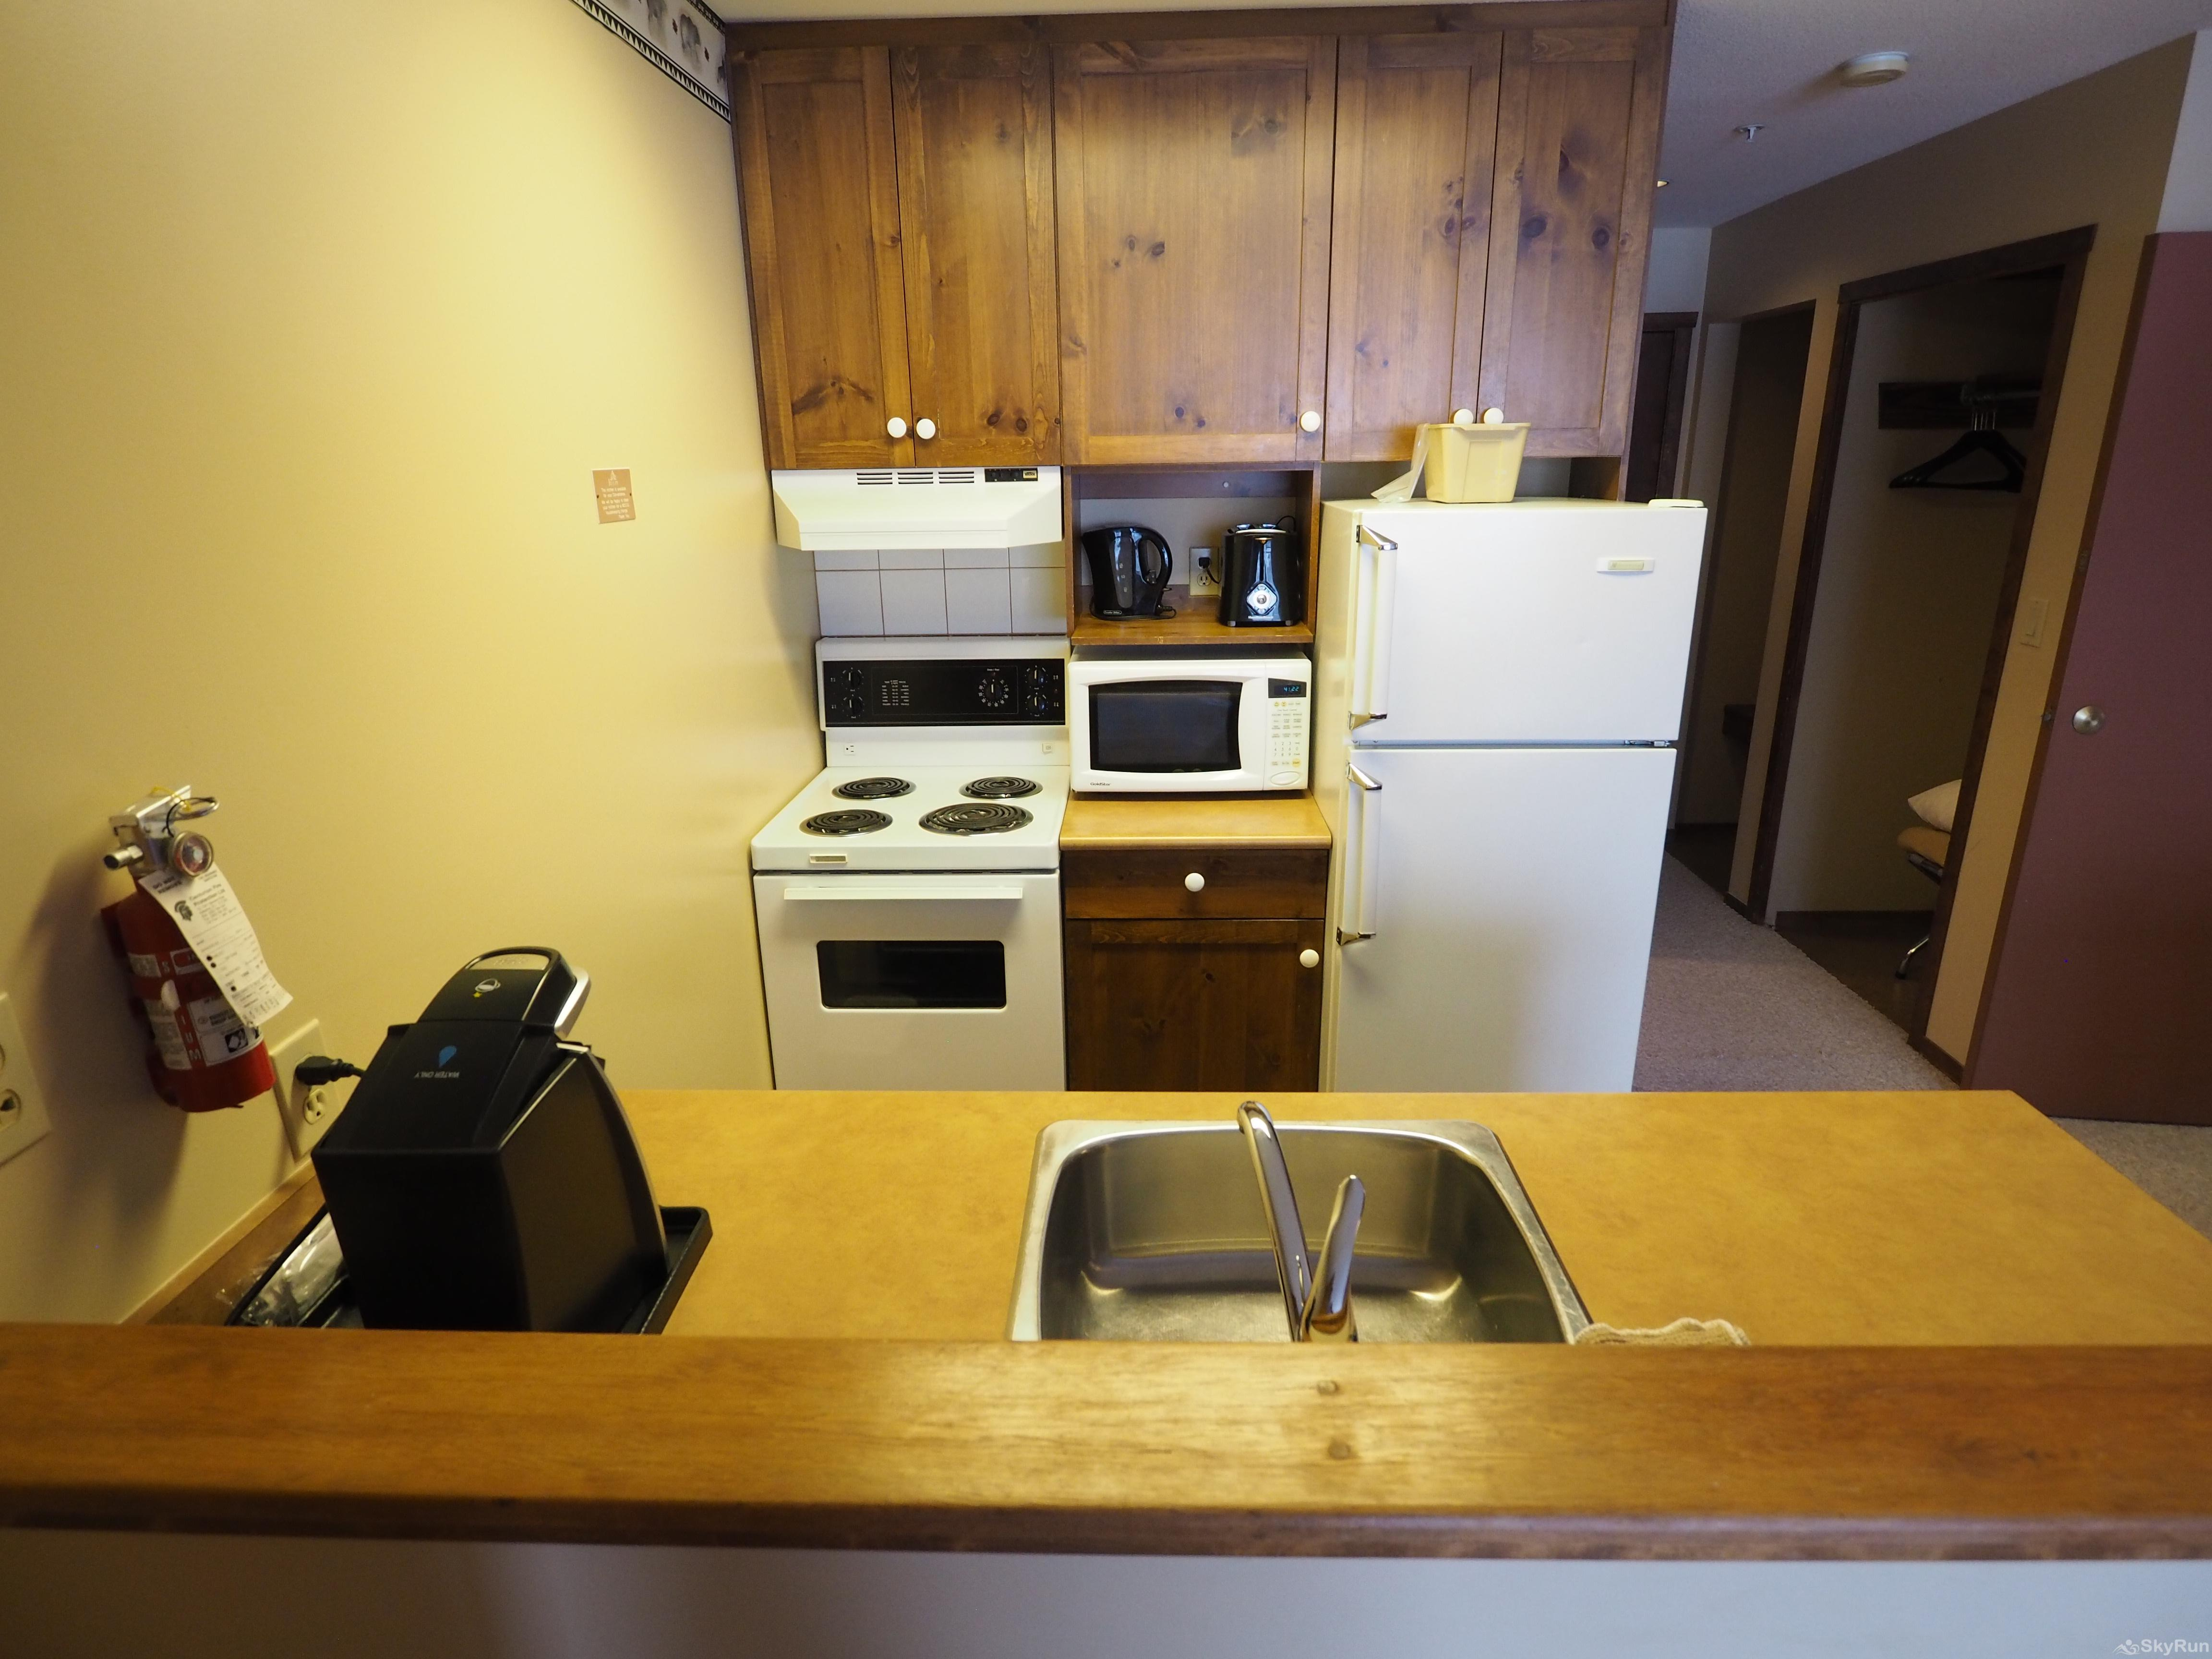 Apex Mountain Inn 1 BDRM Suite 205-206 Kitchen